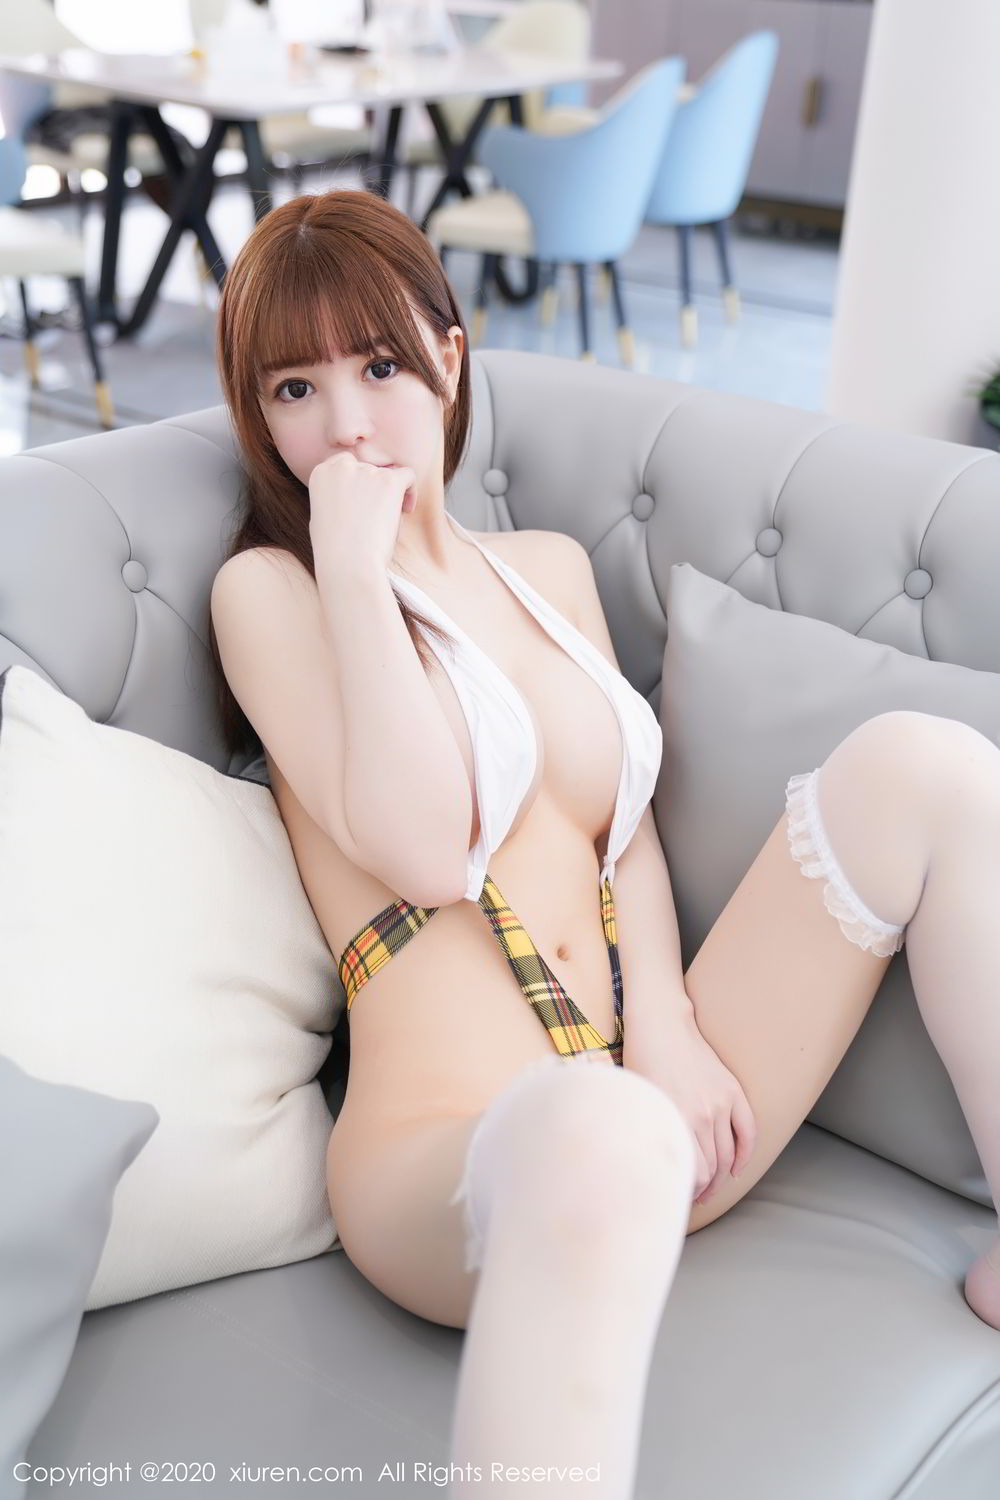 [XiuRen] Vol.2115 Uu Jiang 42P, Baby Face Big Boobs, Cute, UU Jiang, Xiuren